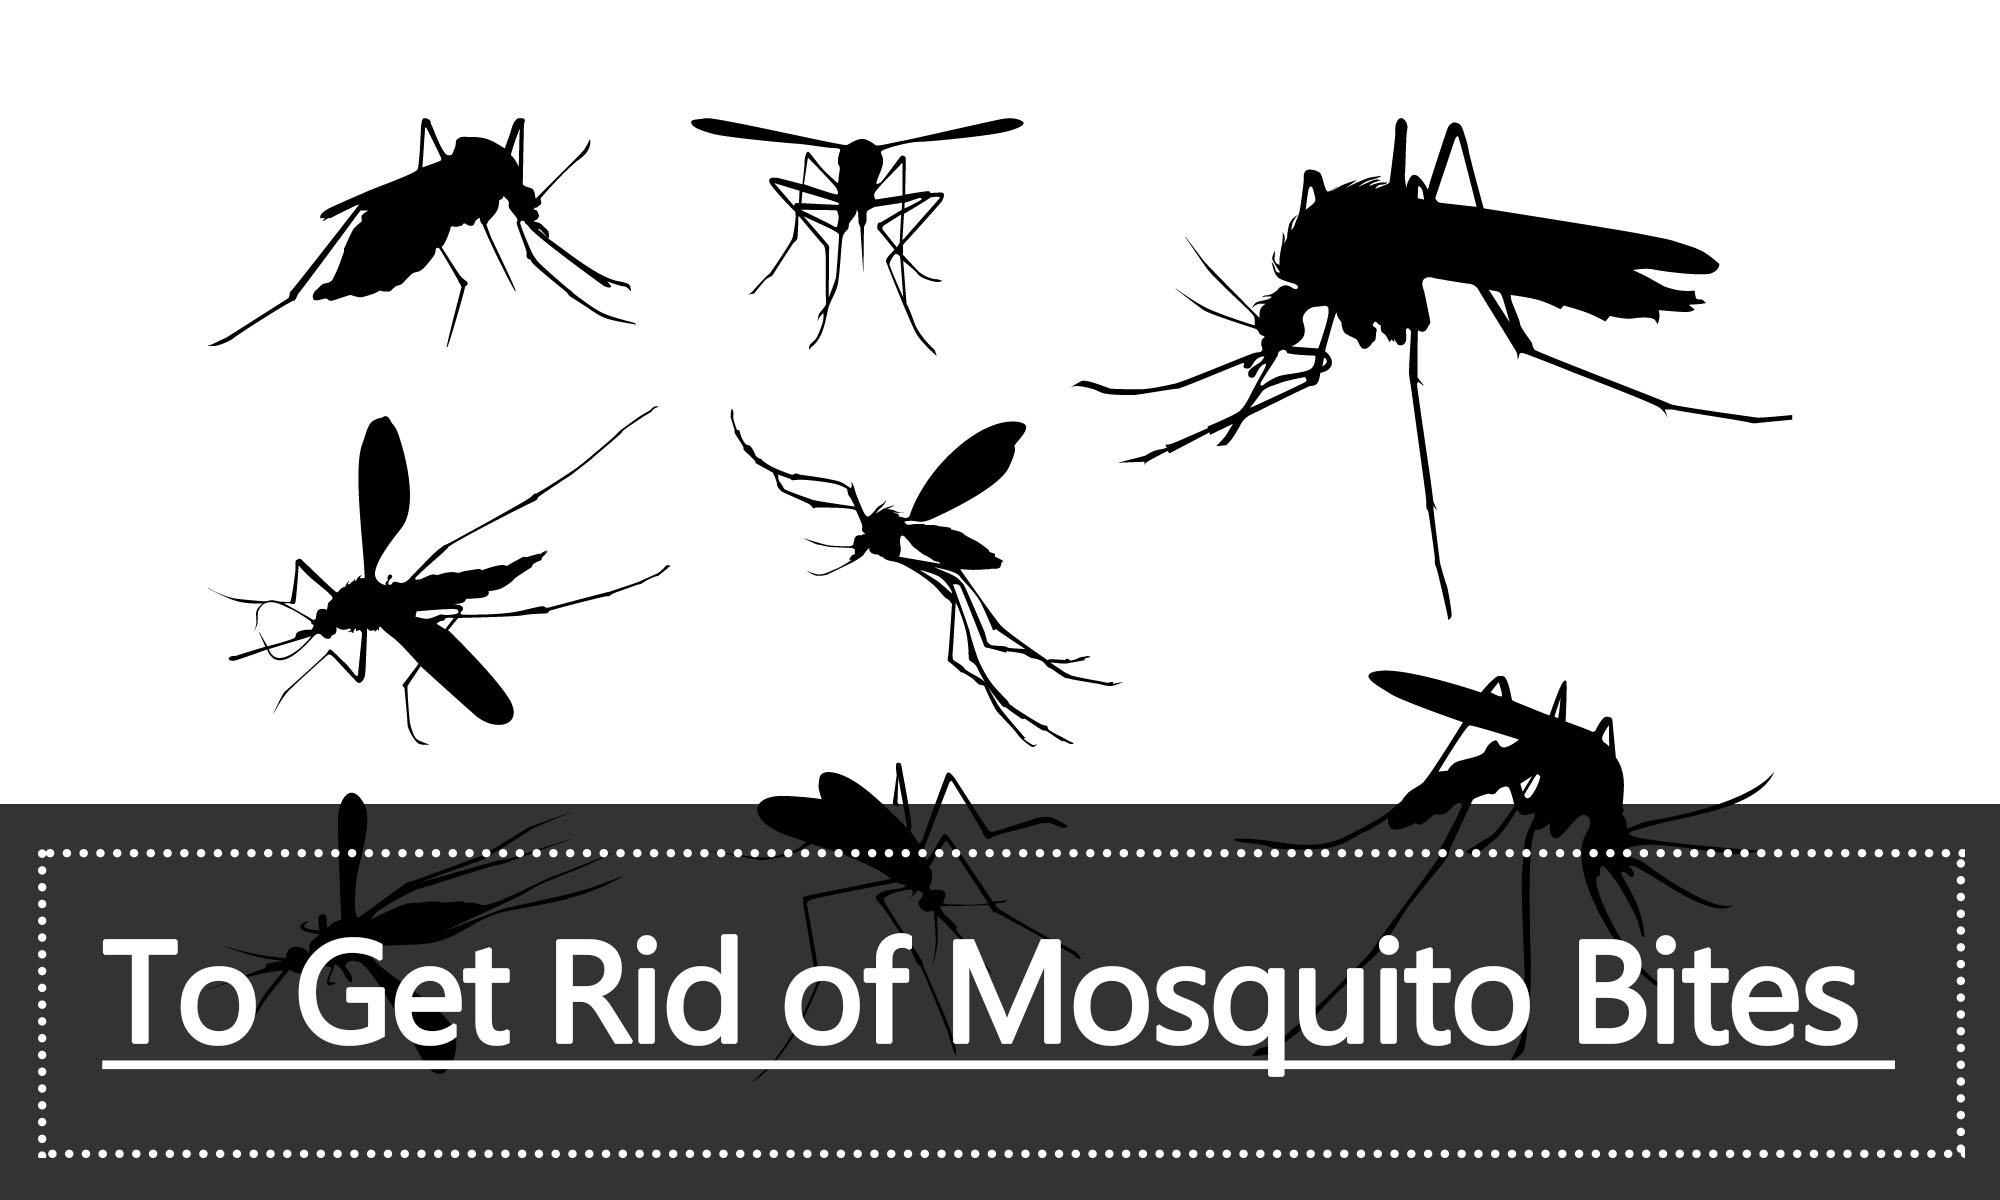 What to choose - chemical or folk remedies for mosquito bites